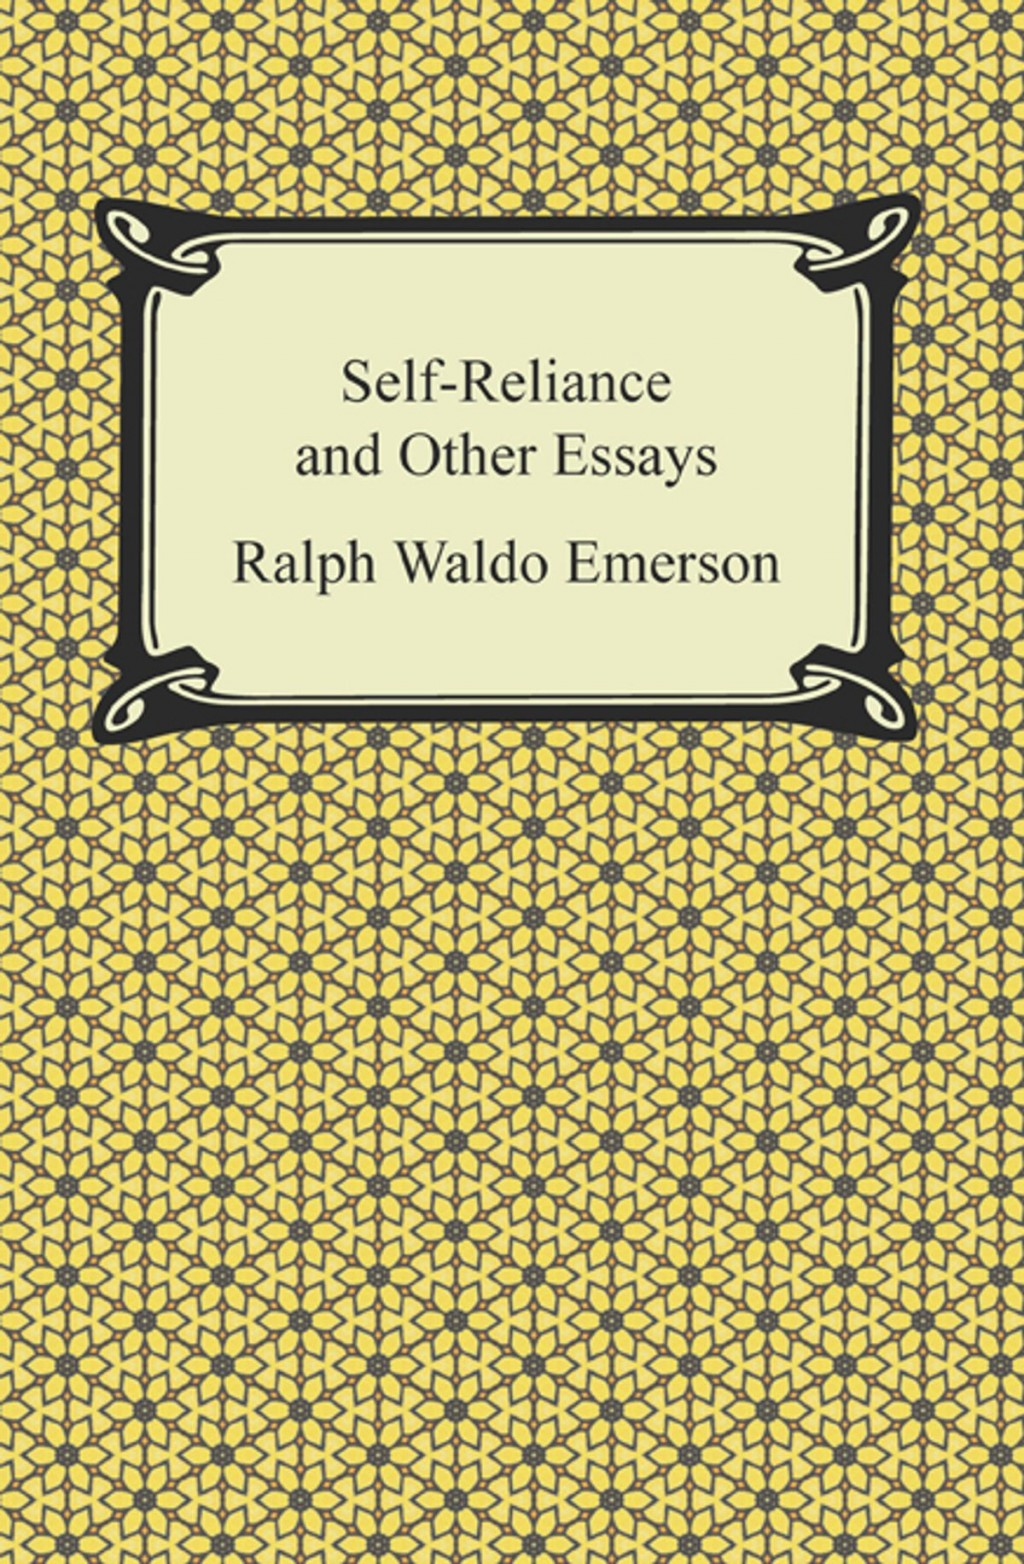 017 Self Reliance And Other Essays Essay Example Formidable Ralph Waldo Emerson Pdf Ekşi Large